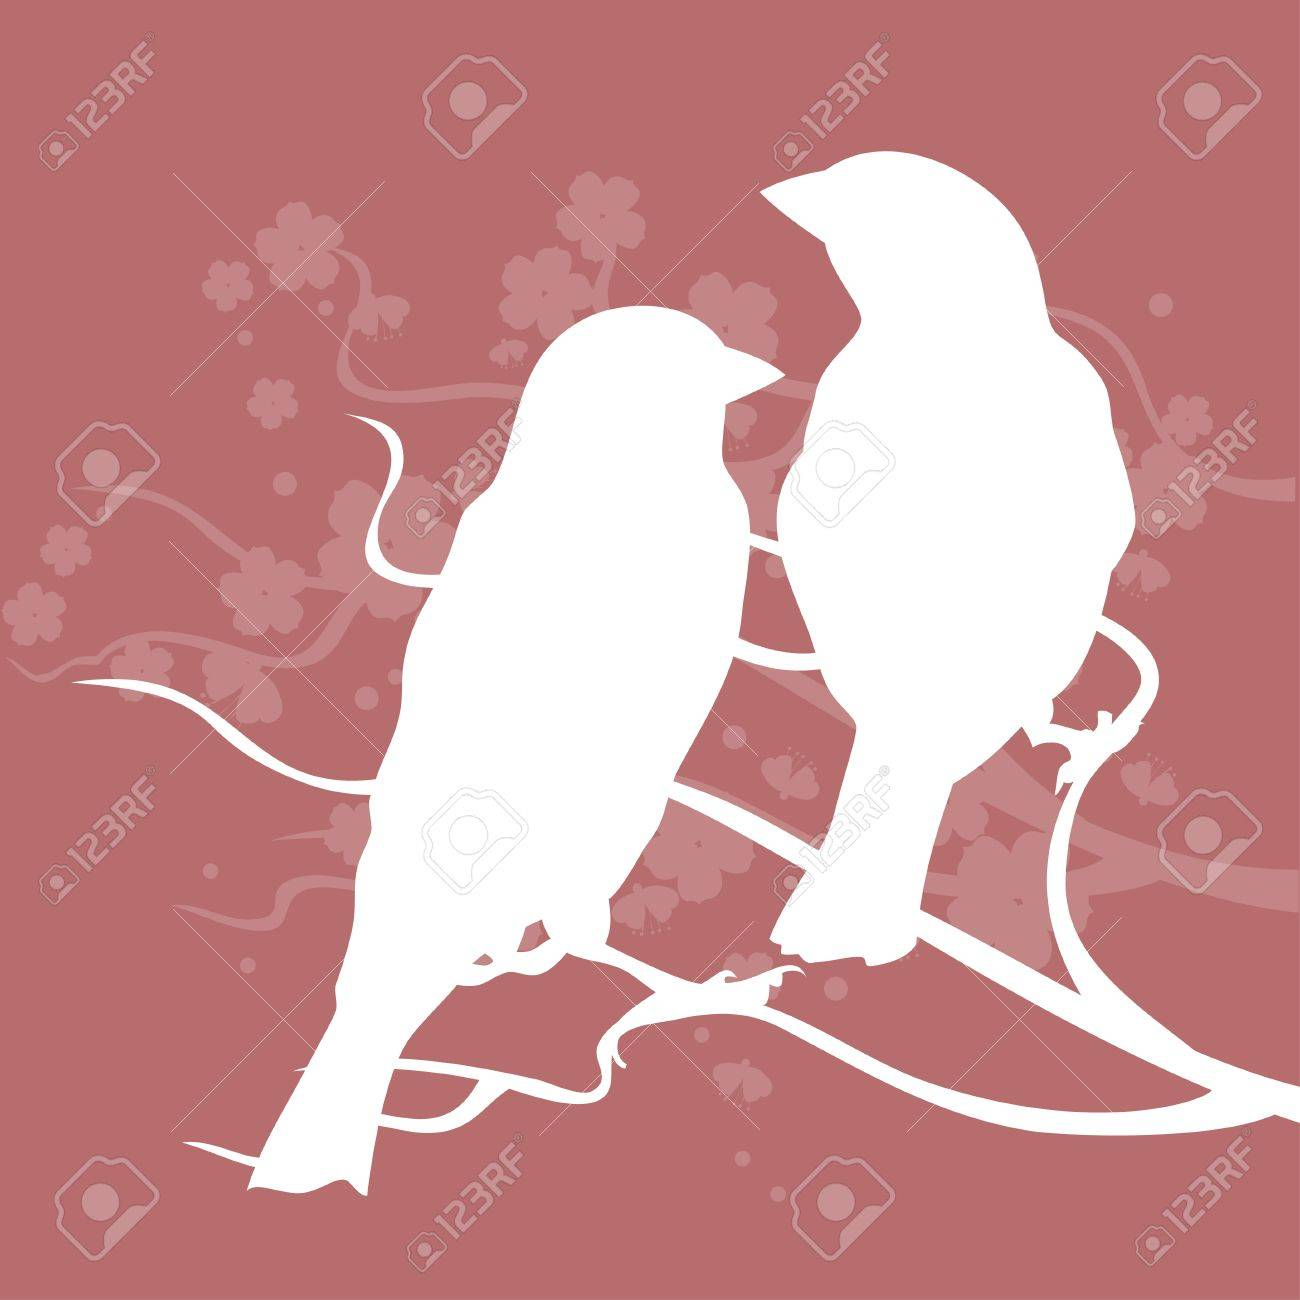 Silhouettes Of Birds Sitting Together And Symbolizes Love Royalty